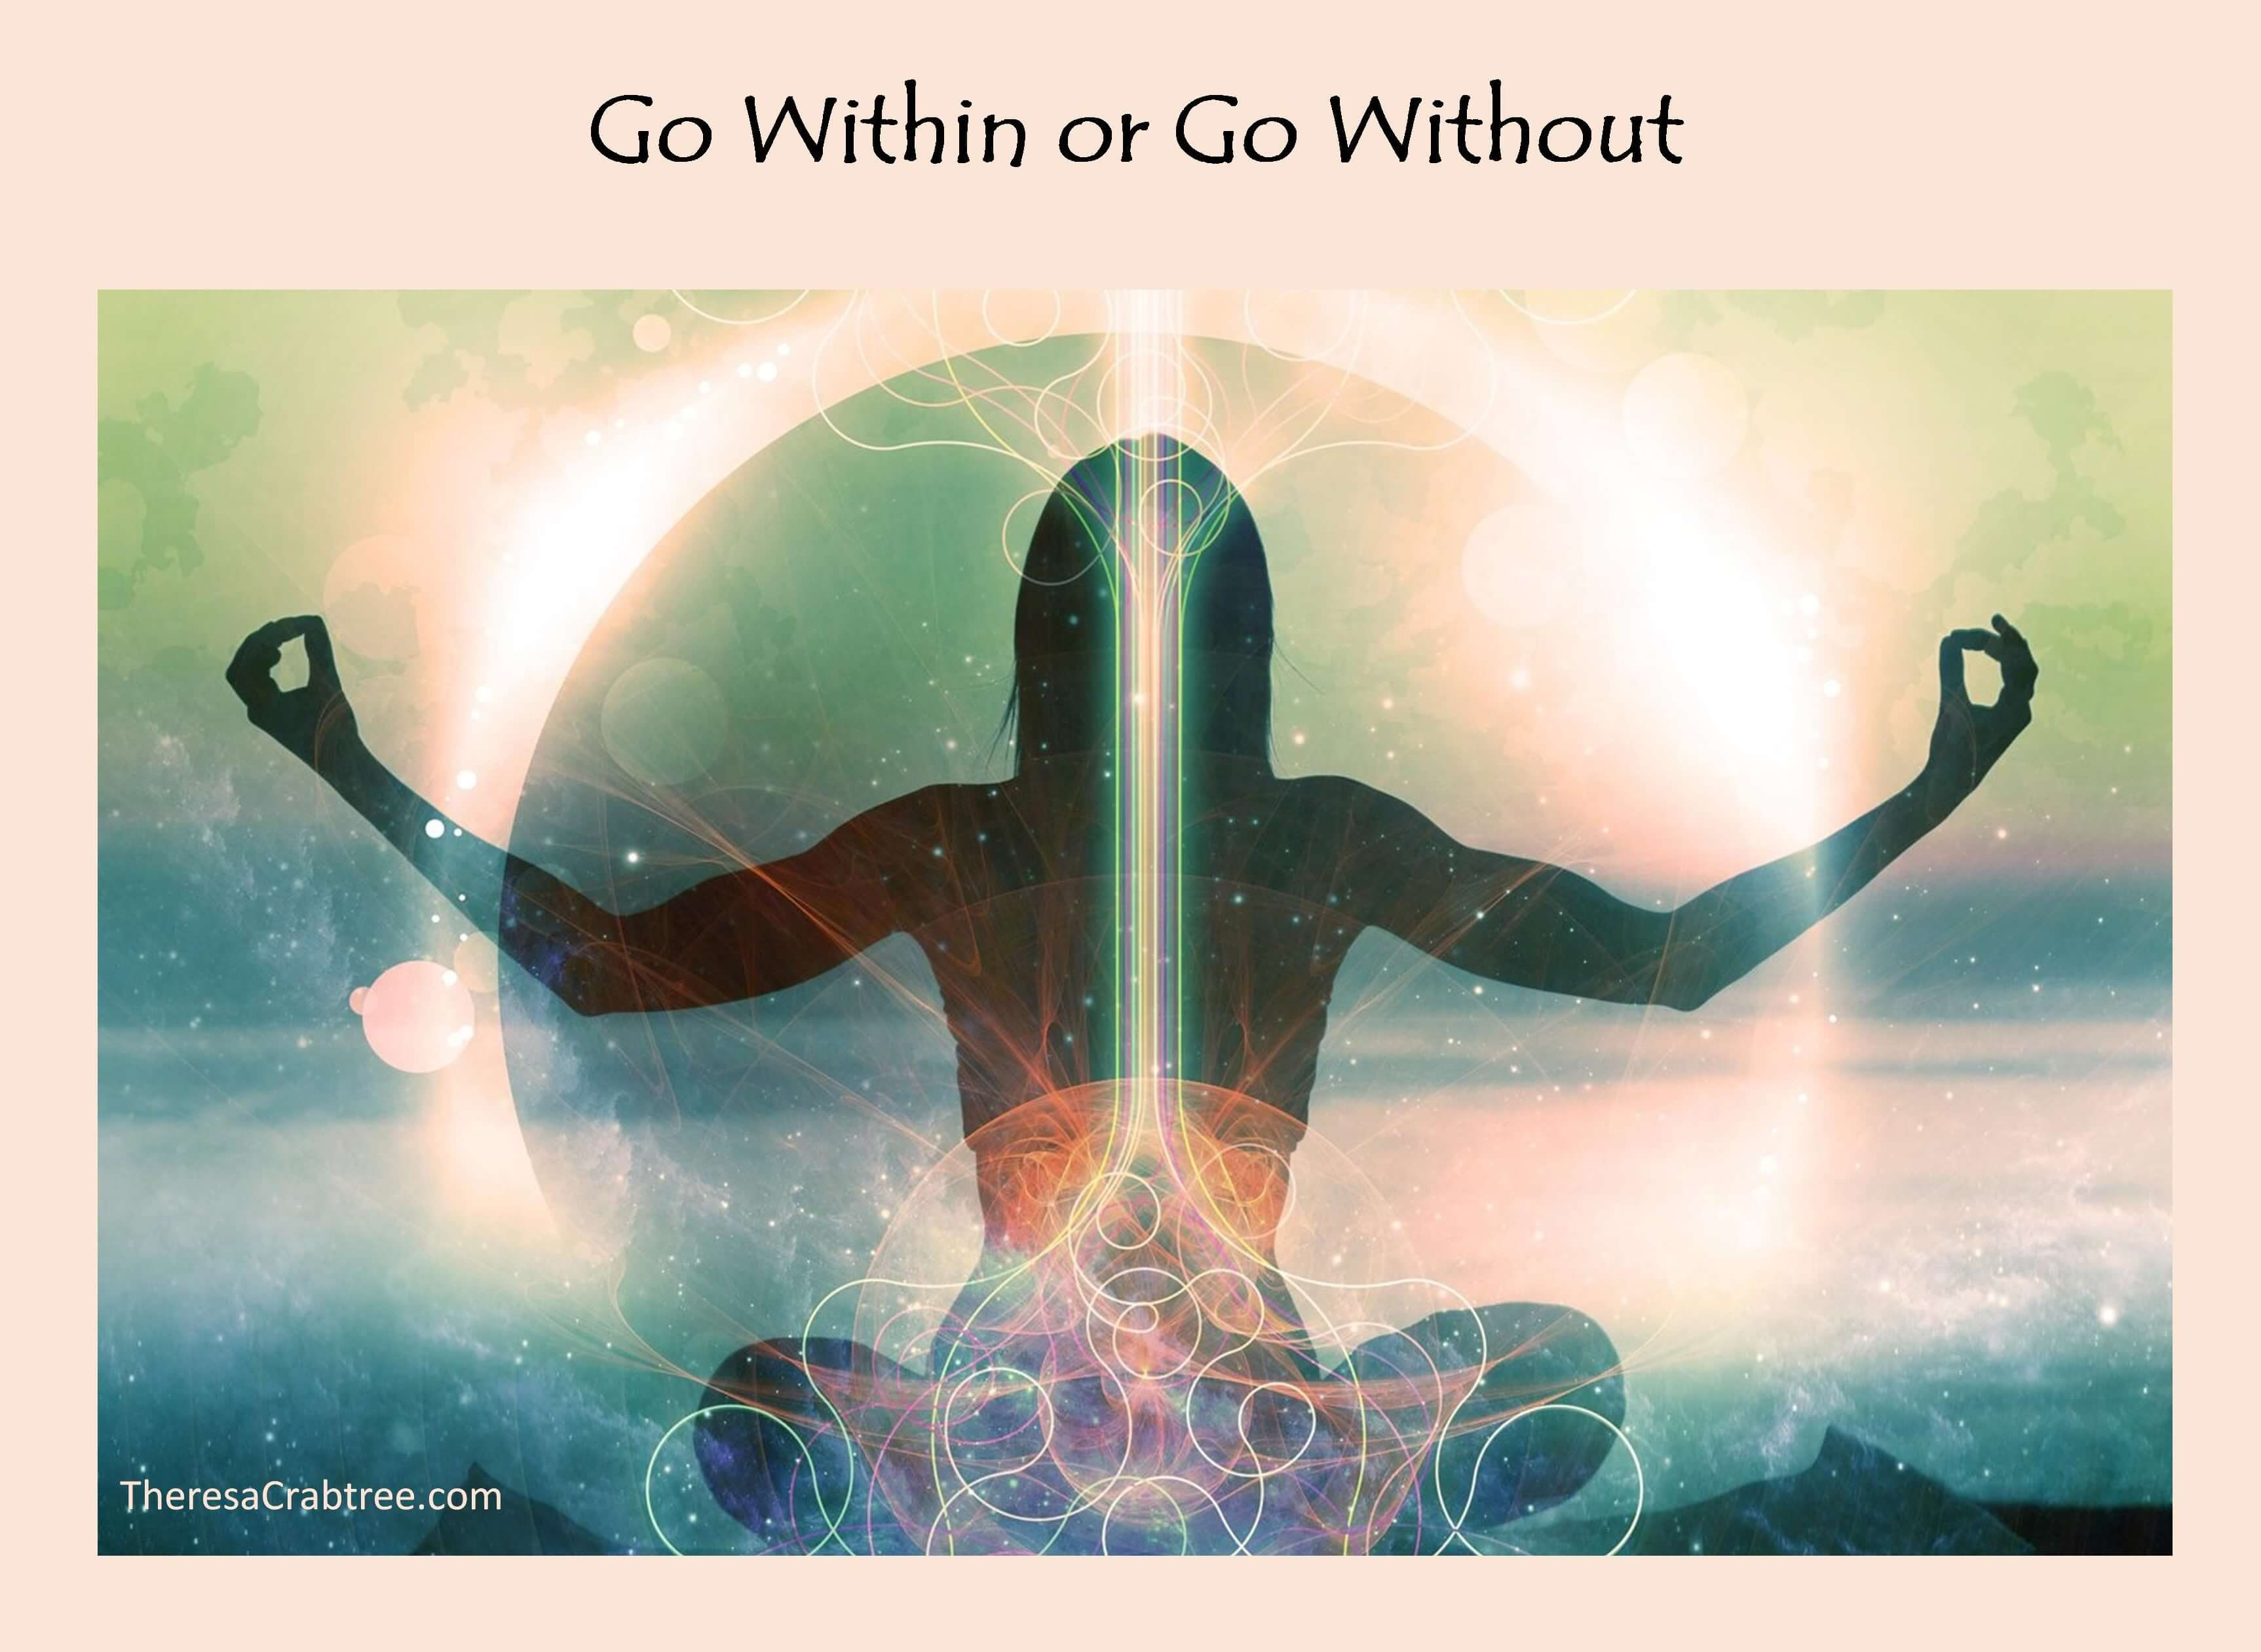 Go Within or Go Without